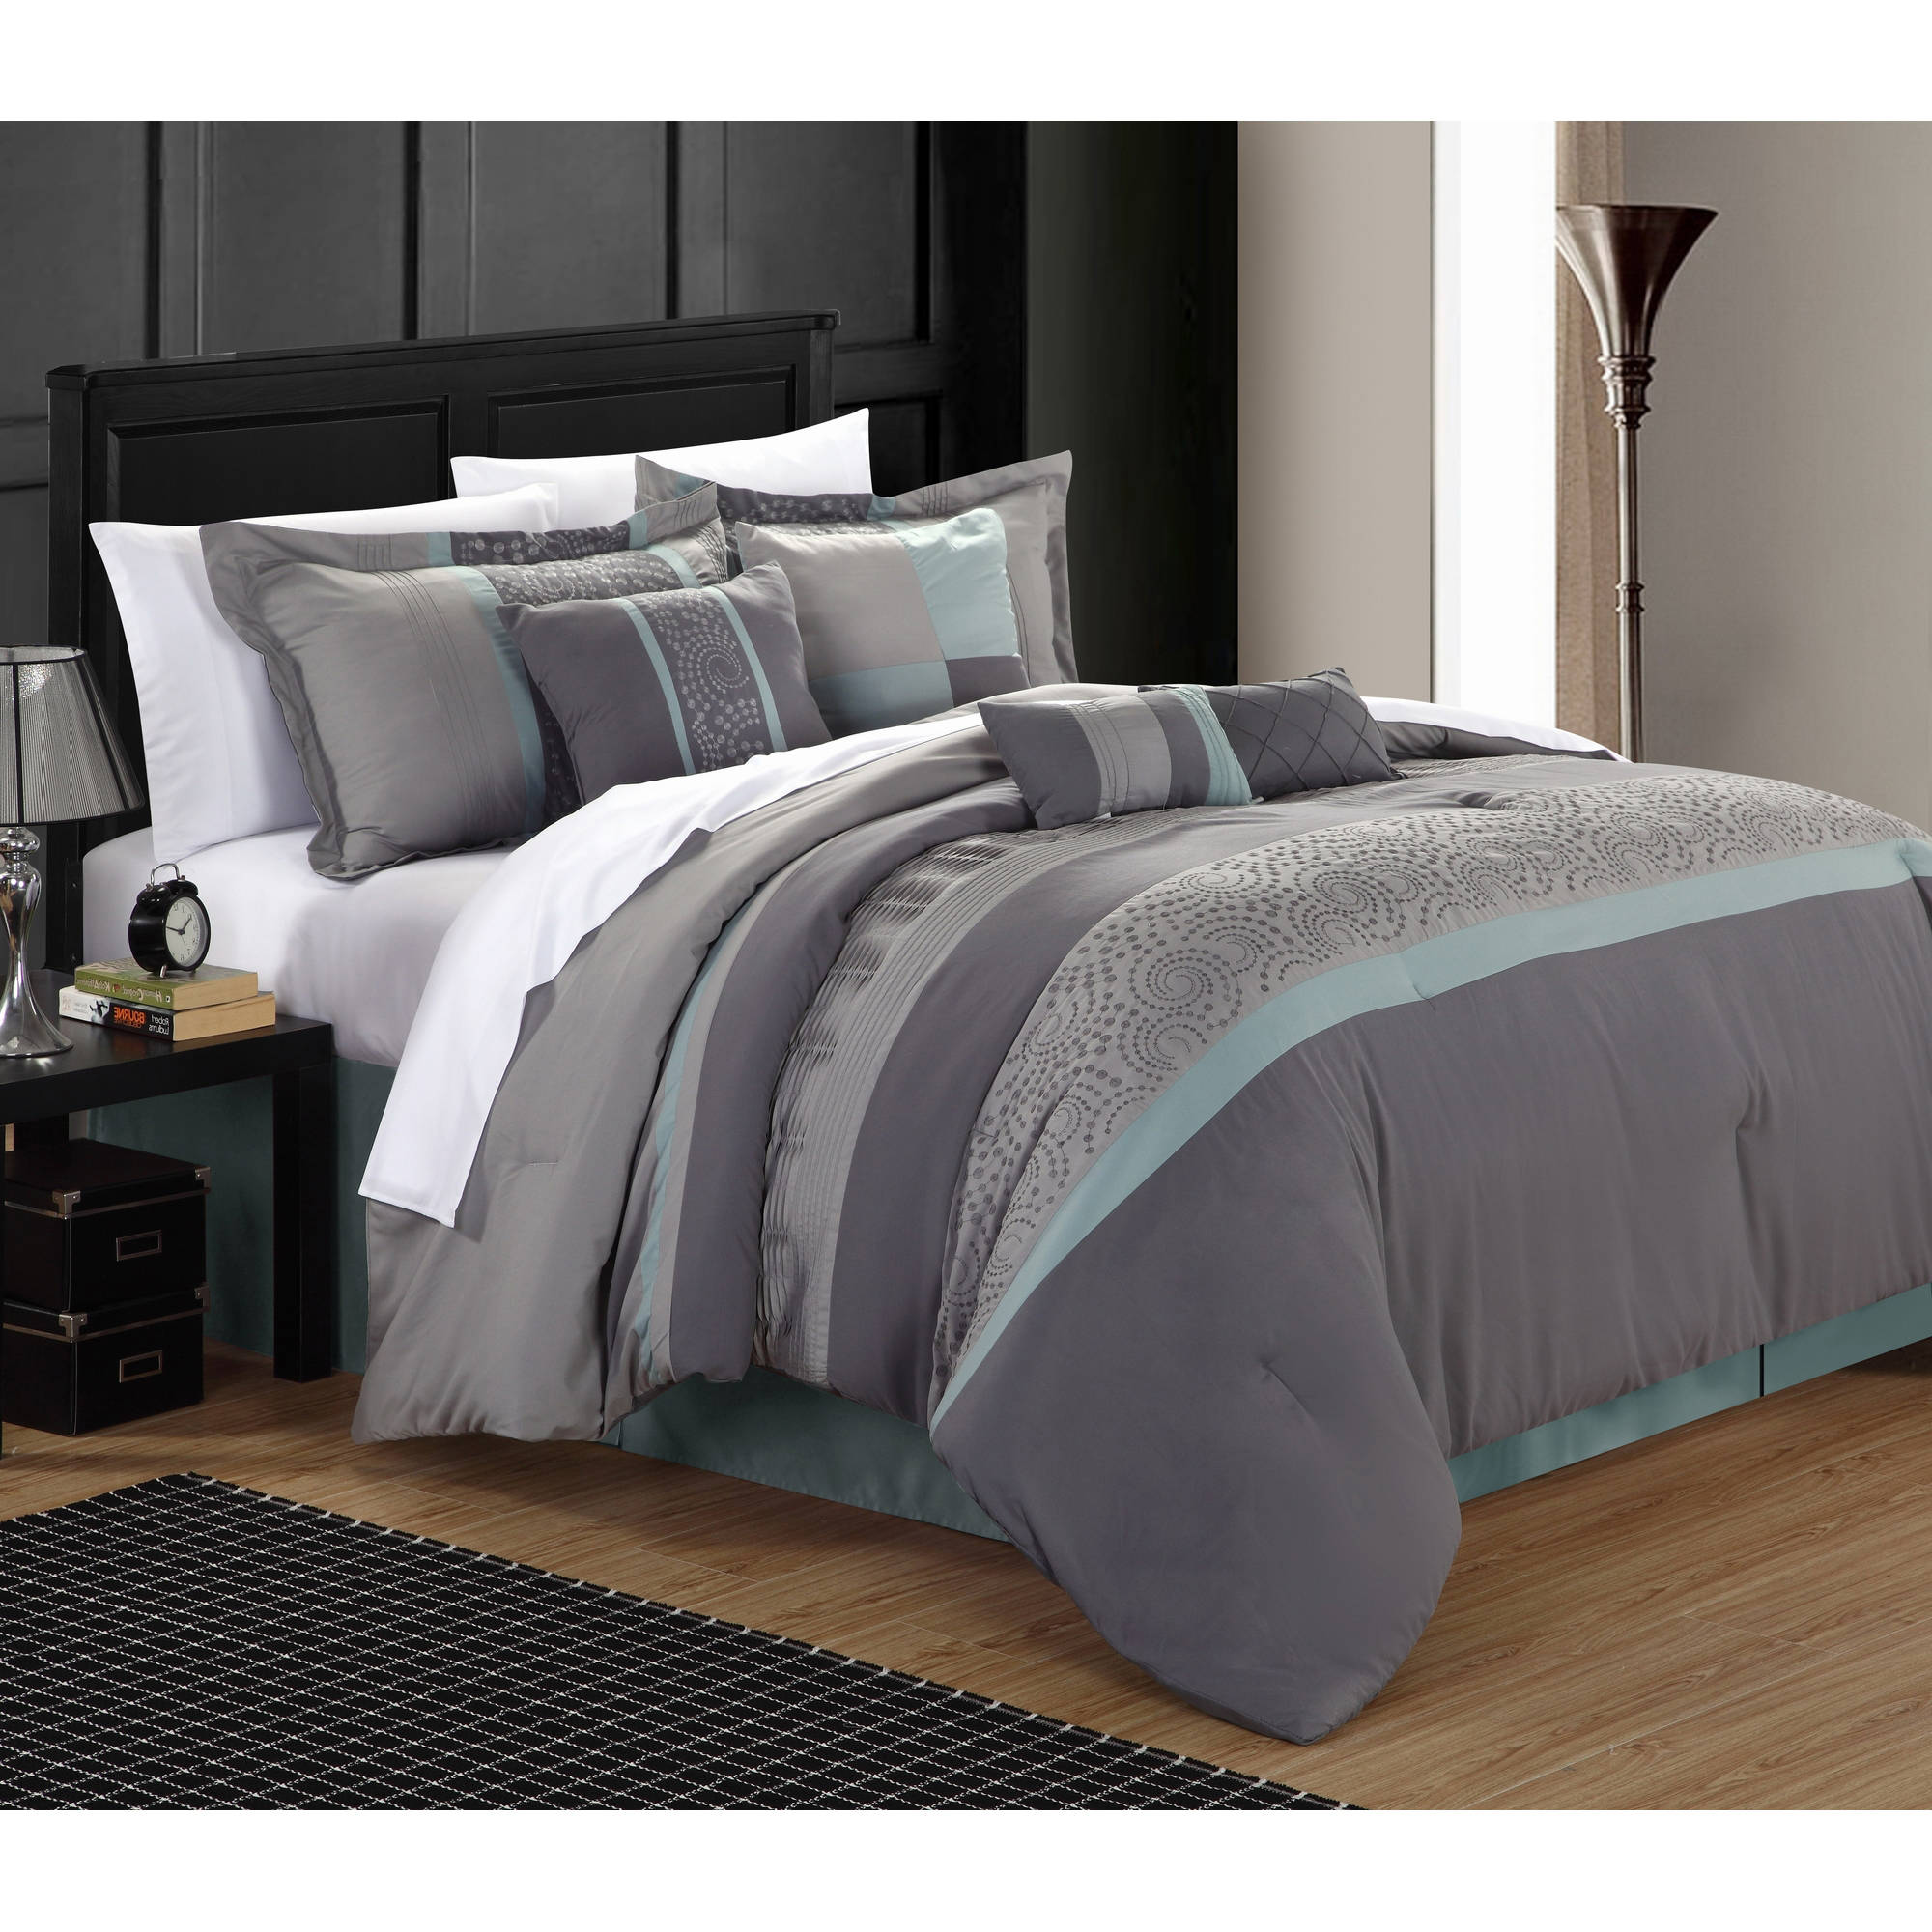 Chic Home Euphrasia 12 Piece Bed in a Bag Comforter Set